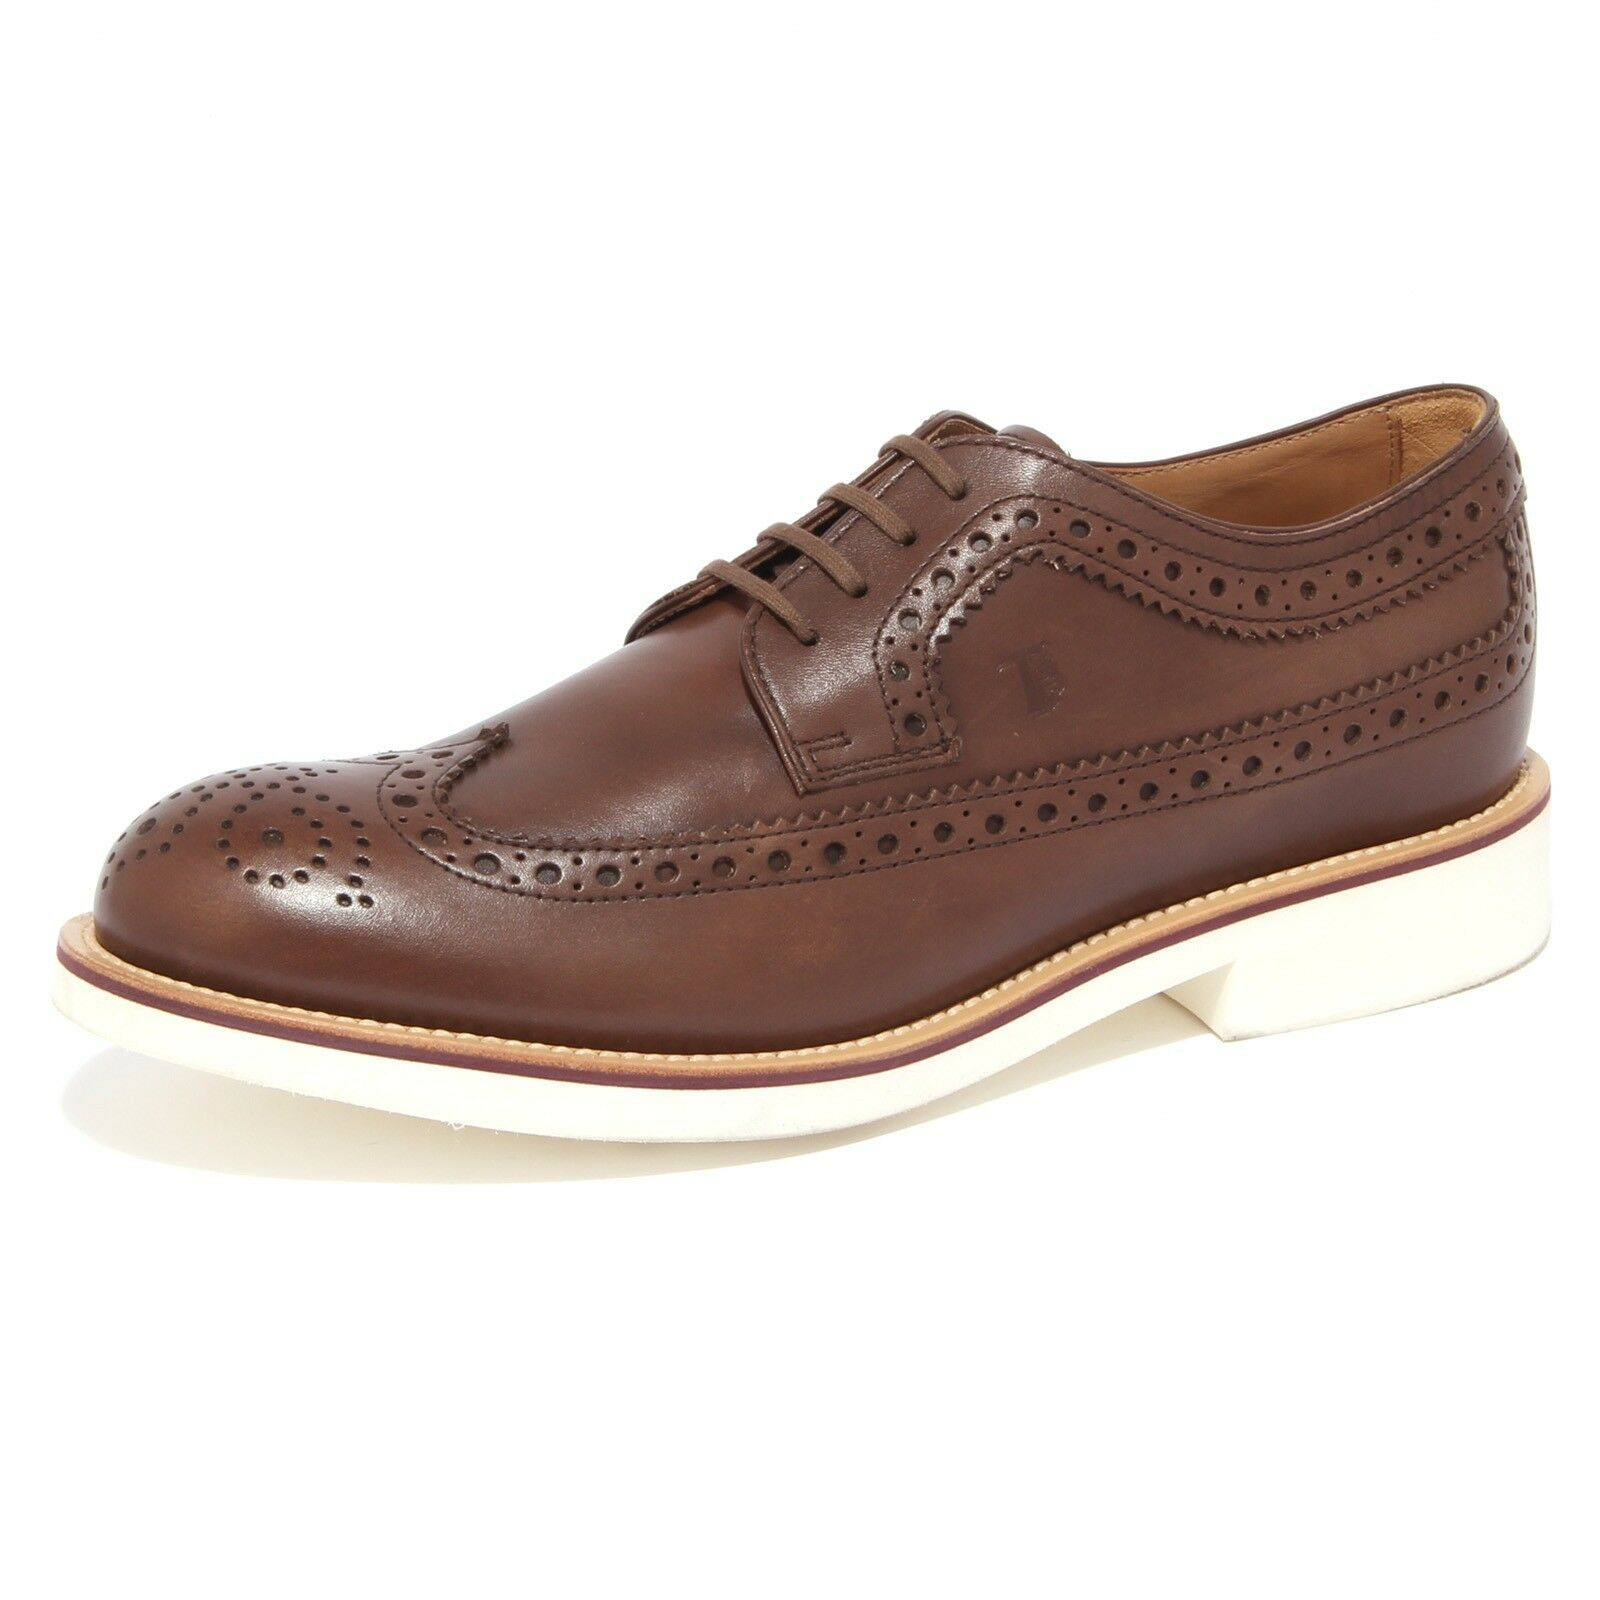 4423Q scarpe scarpa classica inglese TOD'S scarpe 4423Q marrone shoes men 90e9bb